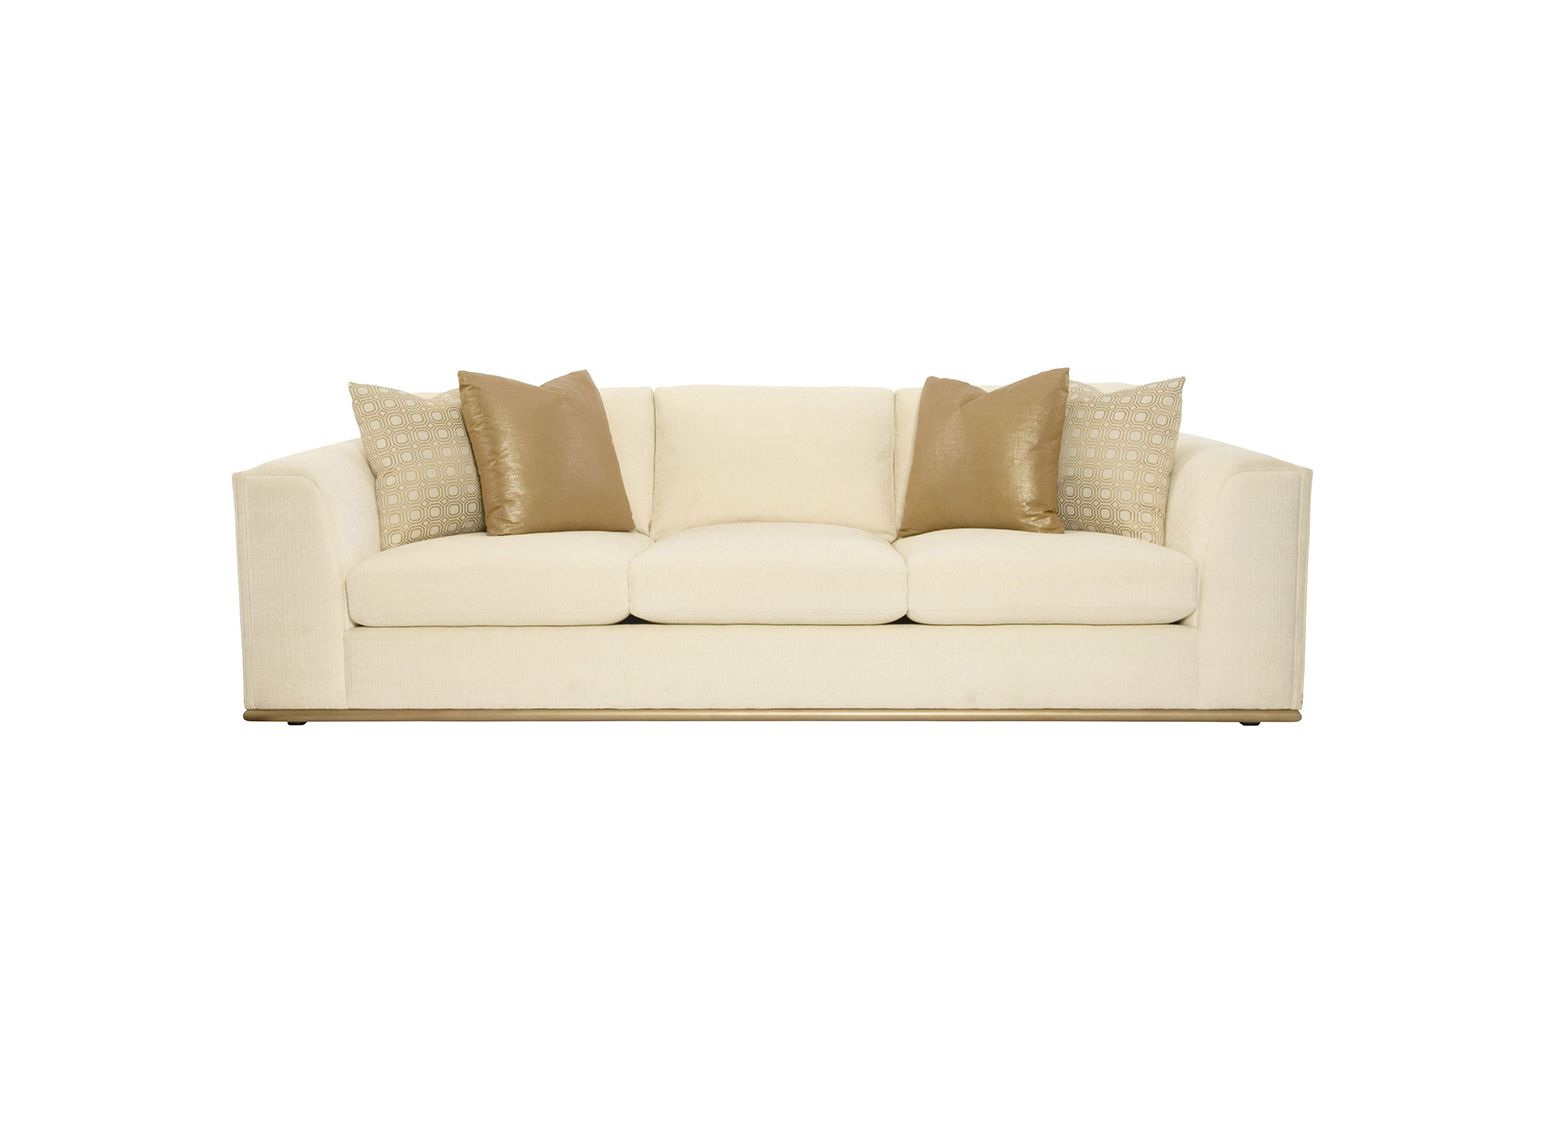 Bernhardt prague sofa set collier 39 s furniture expo for Bernhardt furniture